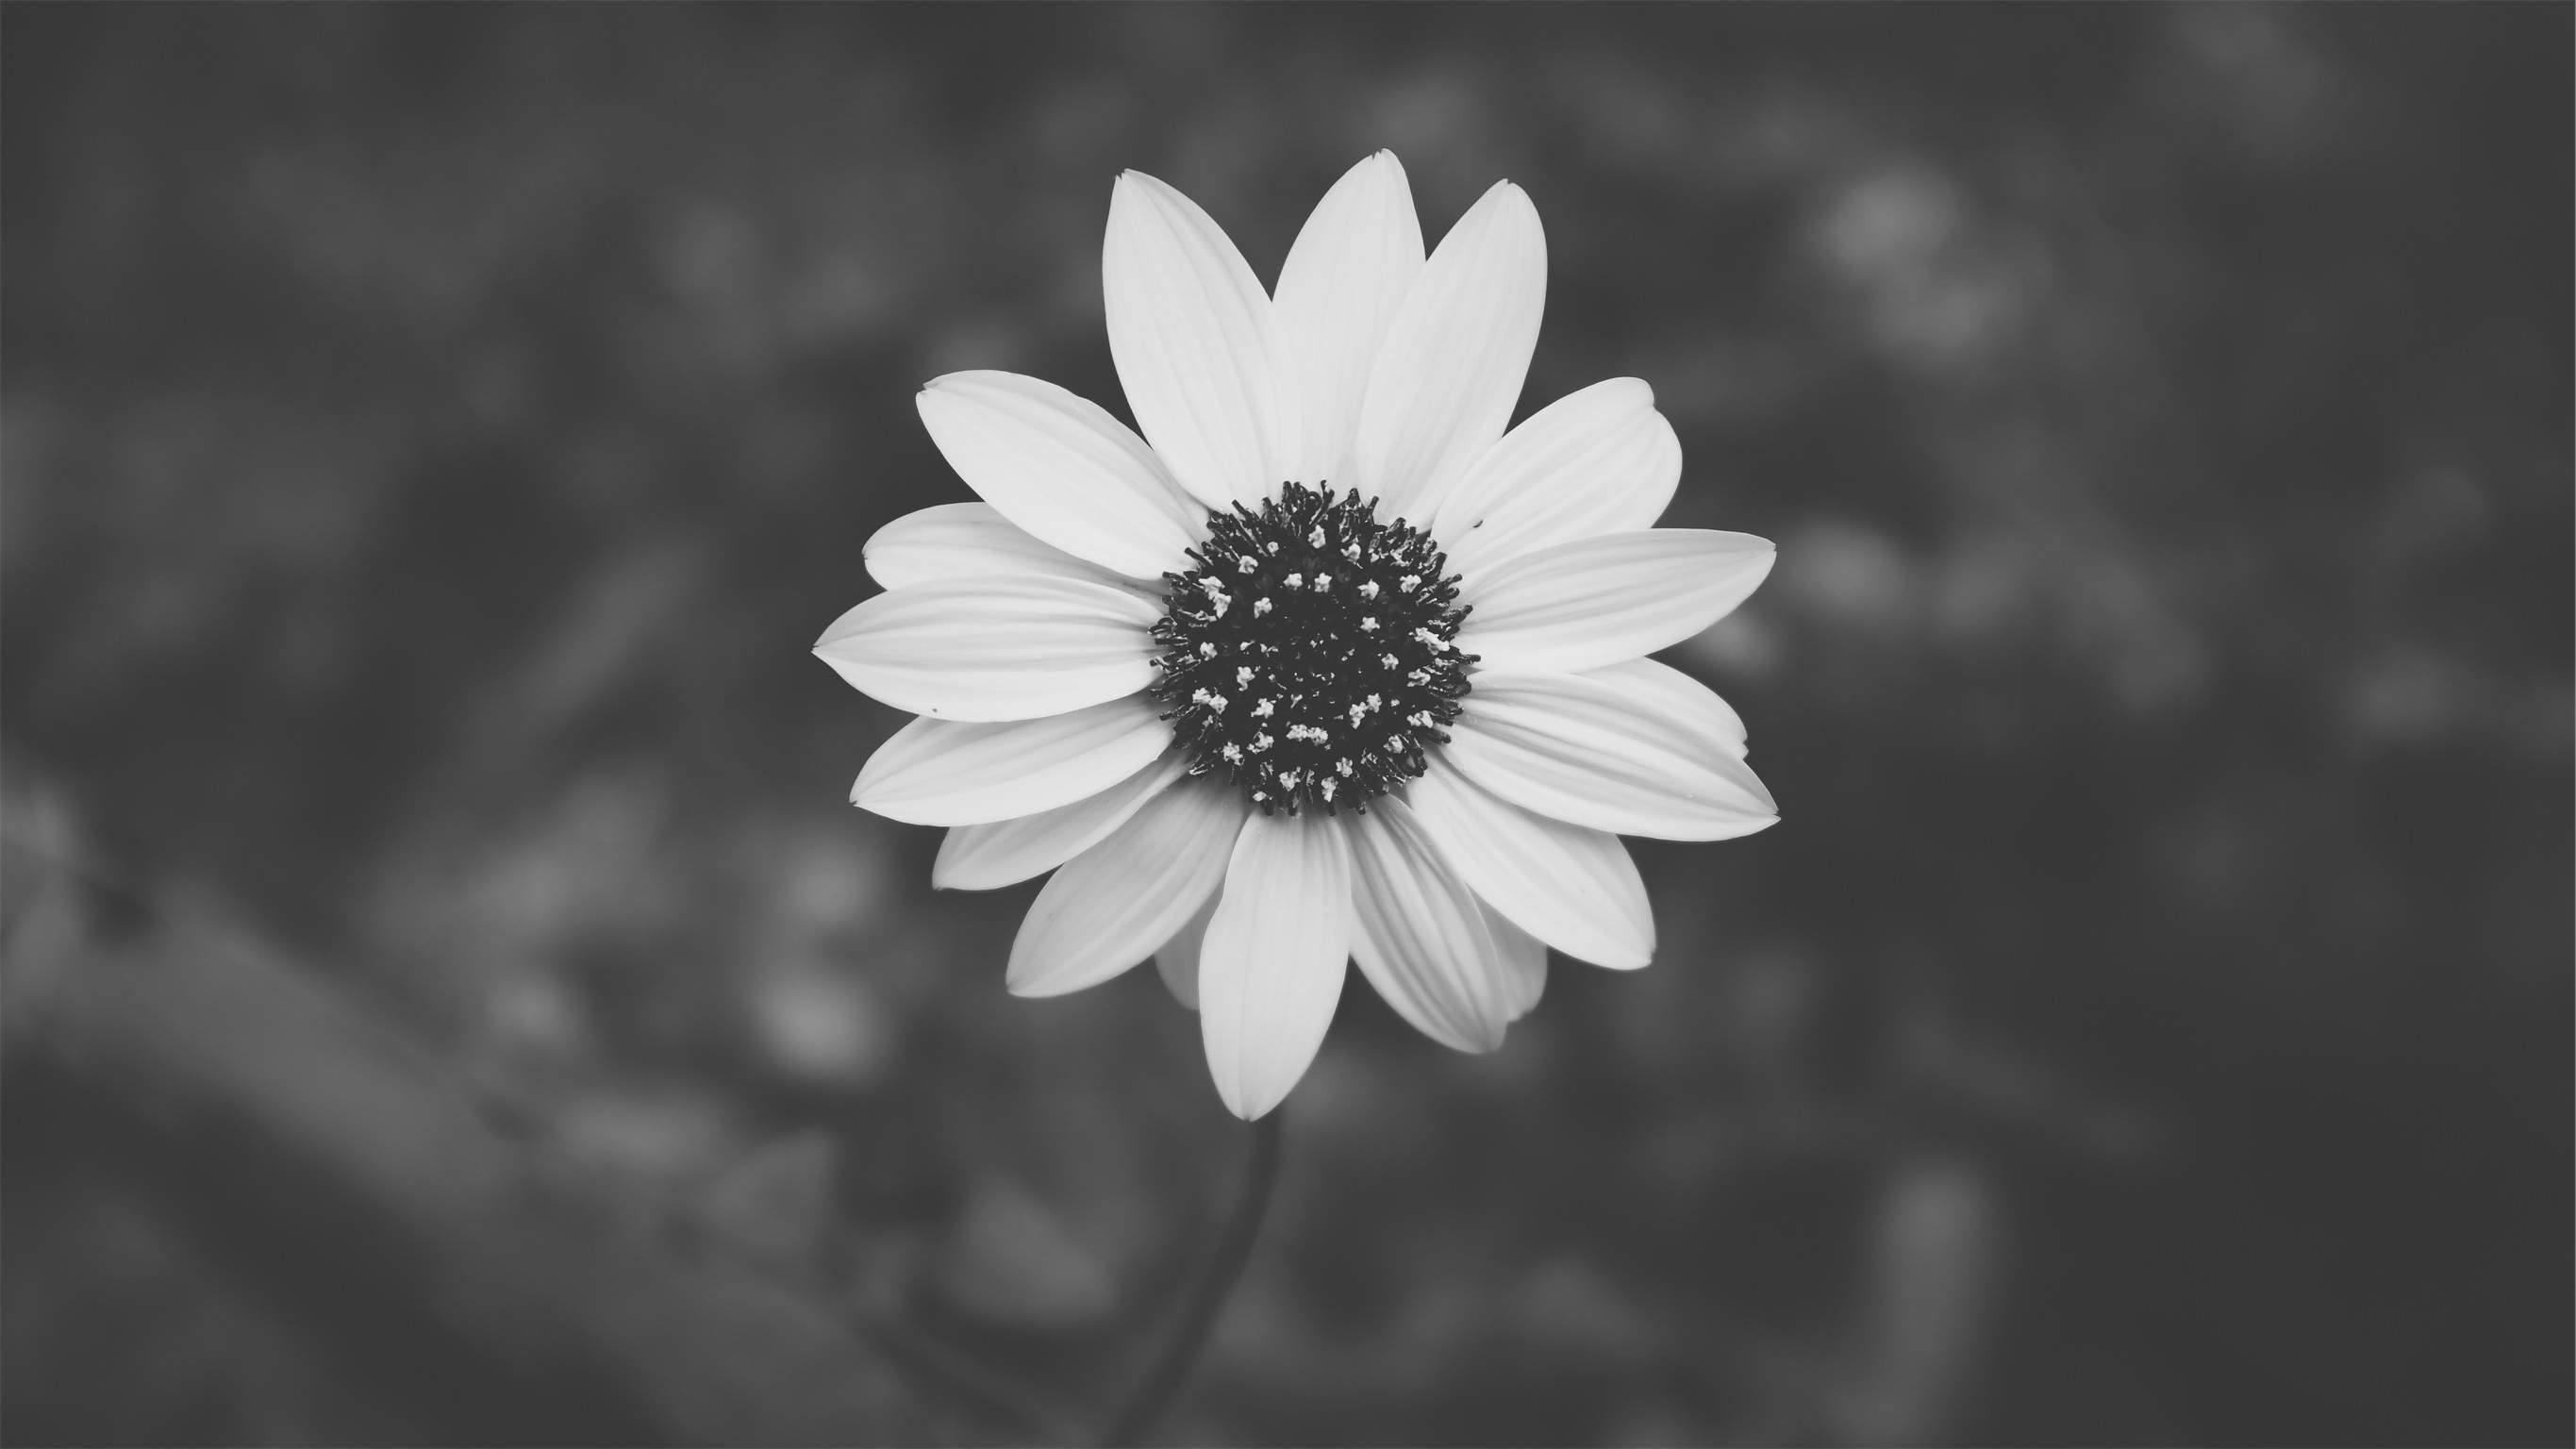 Flower Black And White By Kien Do